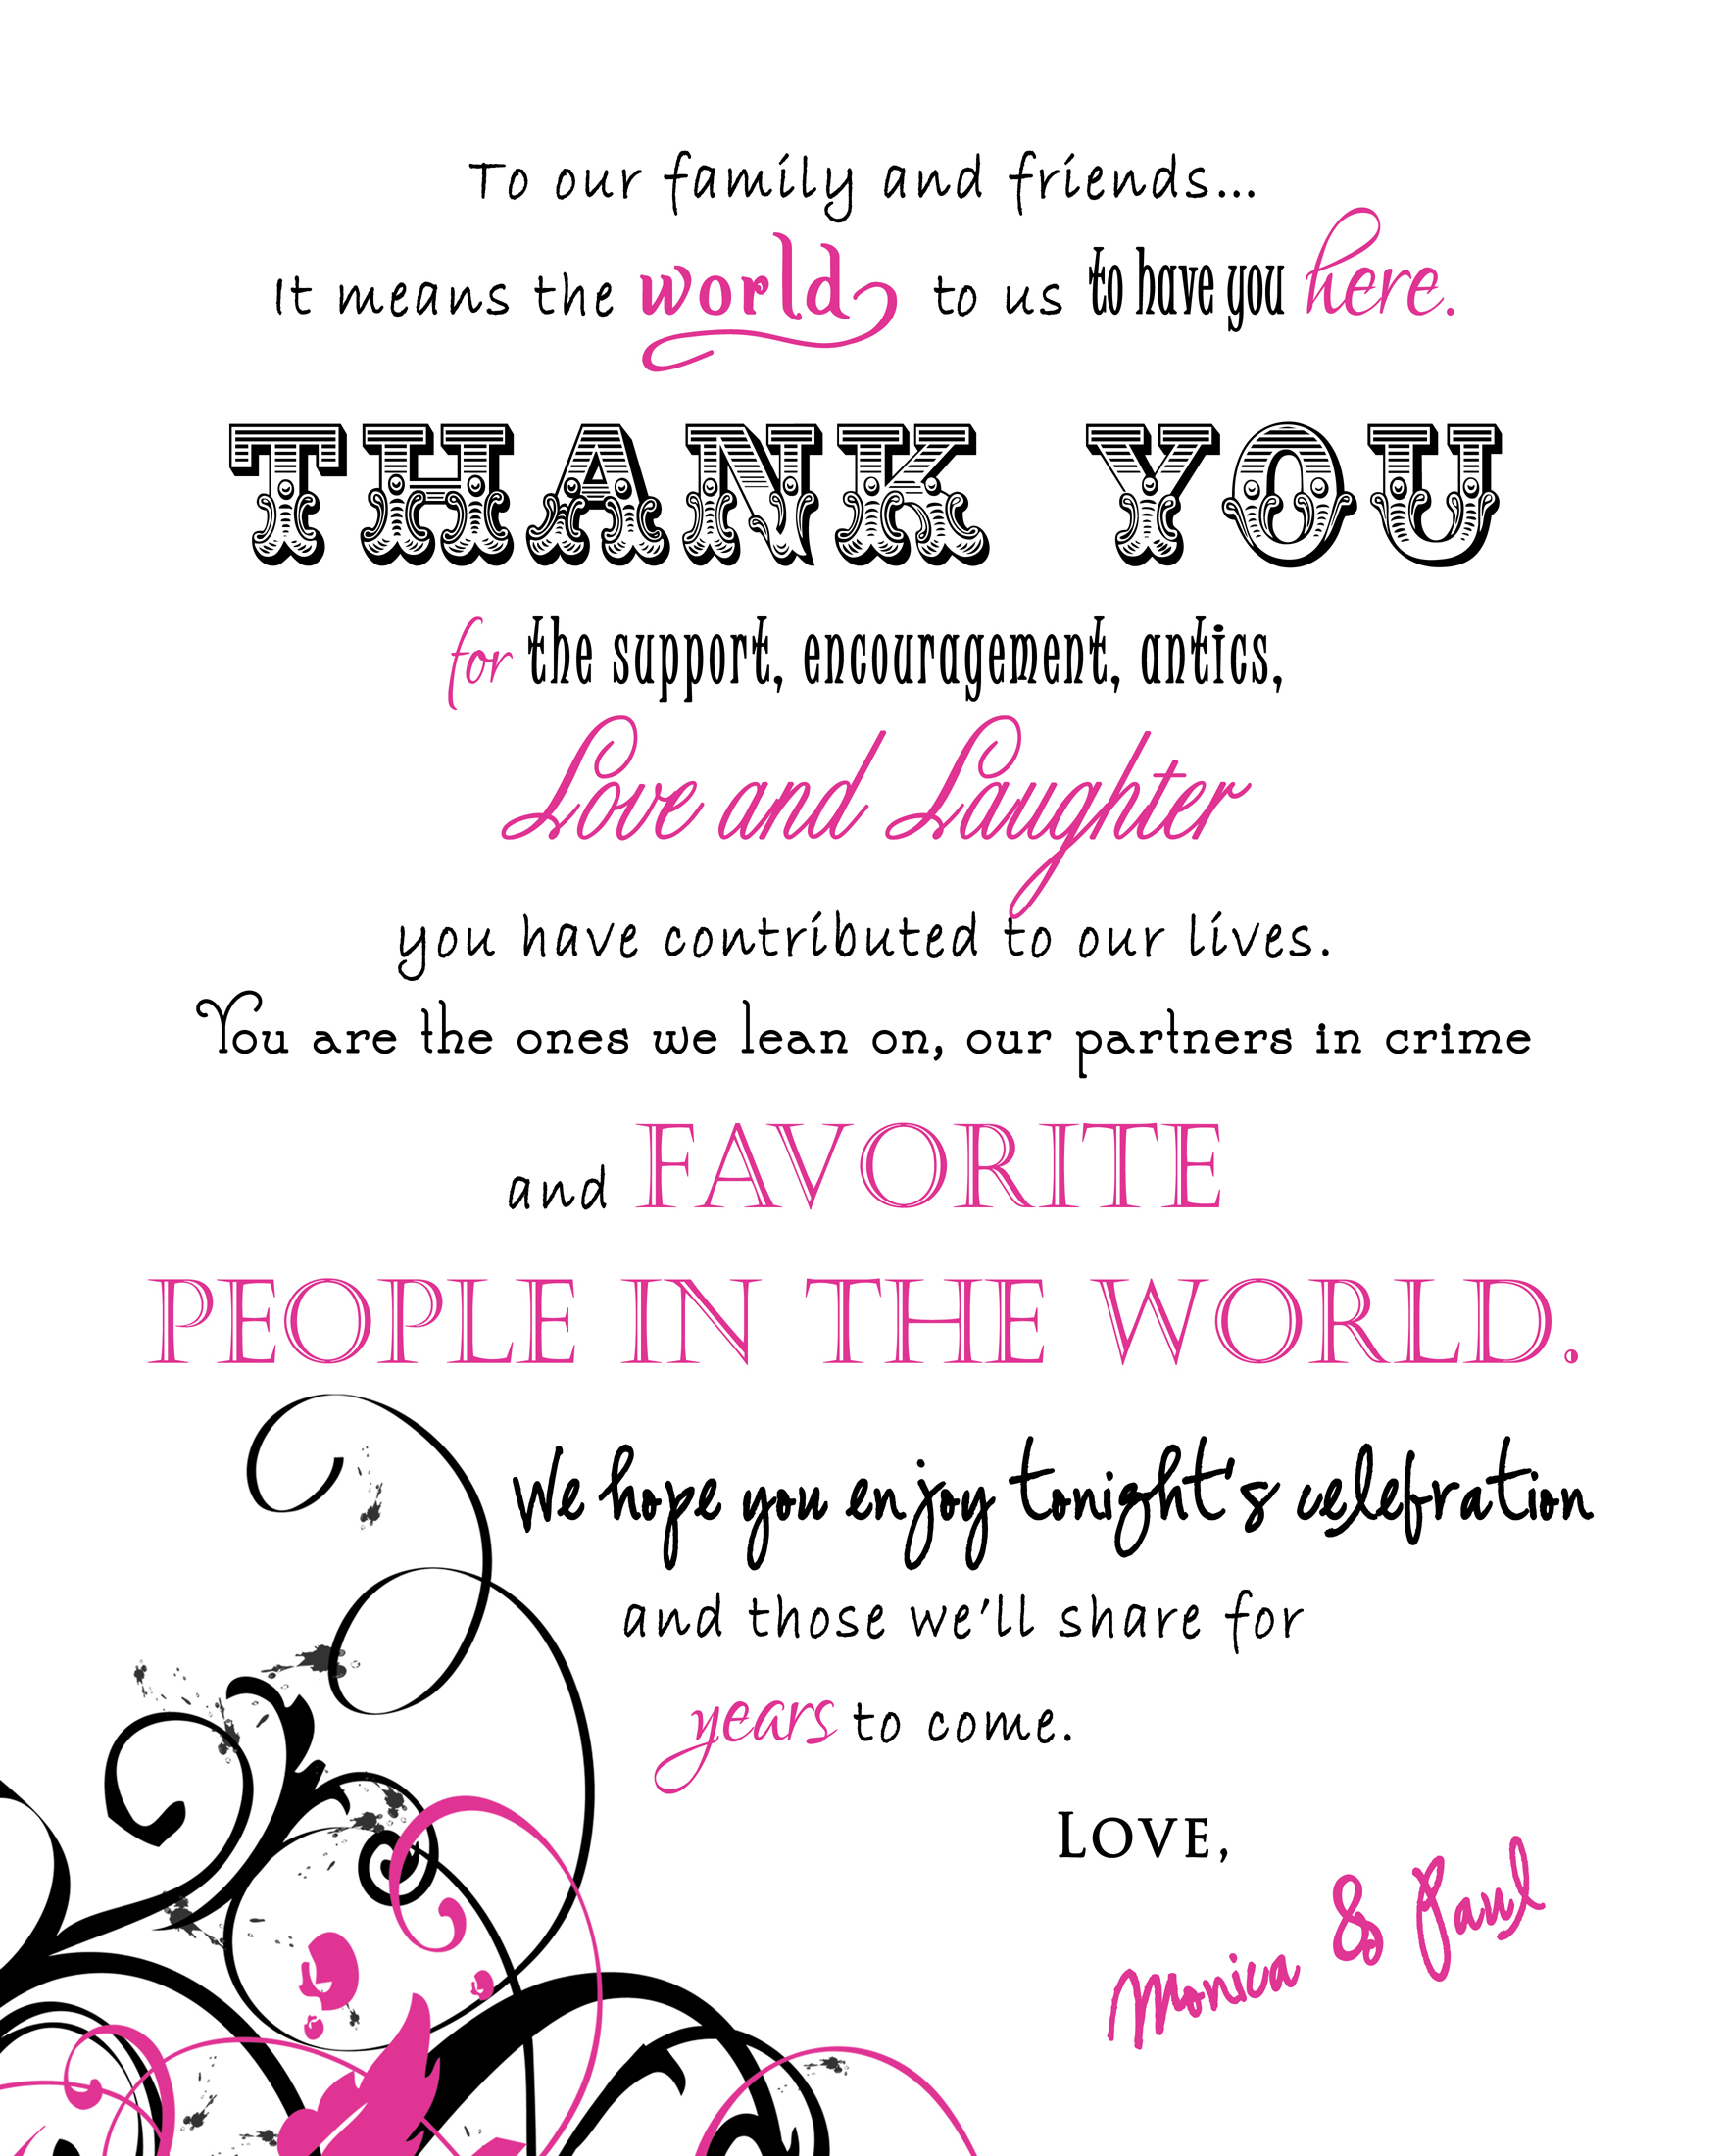 Thank You Messages And Quotes: Stationery Ideas For Your Wedding Day